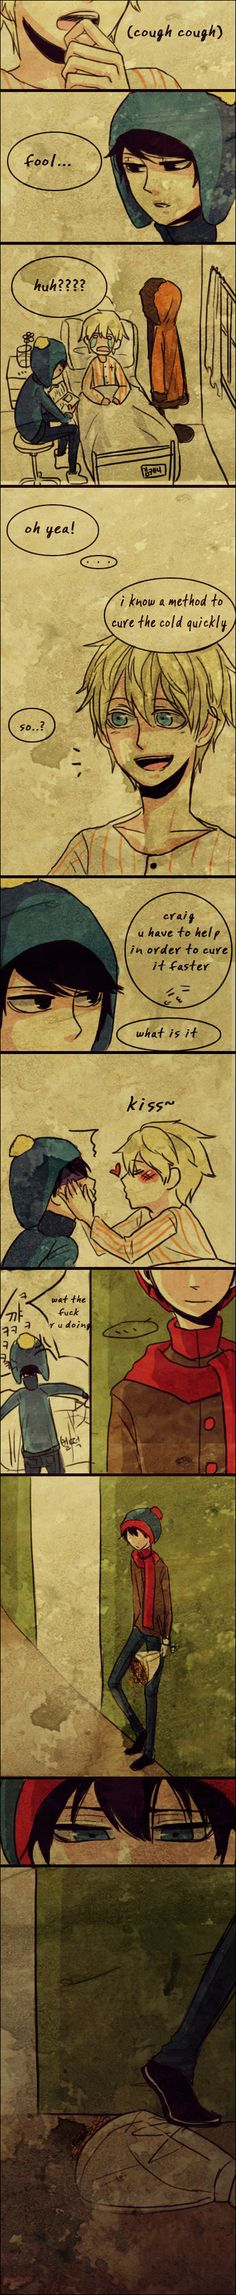 South Park: amor triángulo sujk0823~~~ Don't really ship either of these. But the feels still got to me.